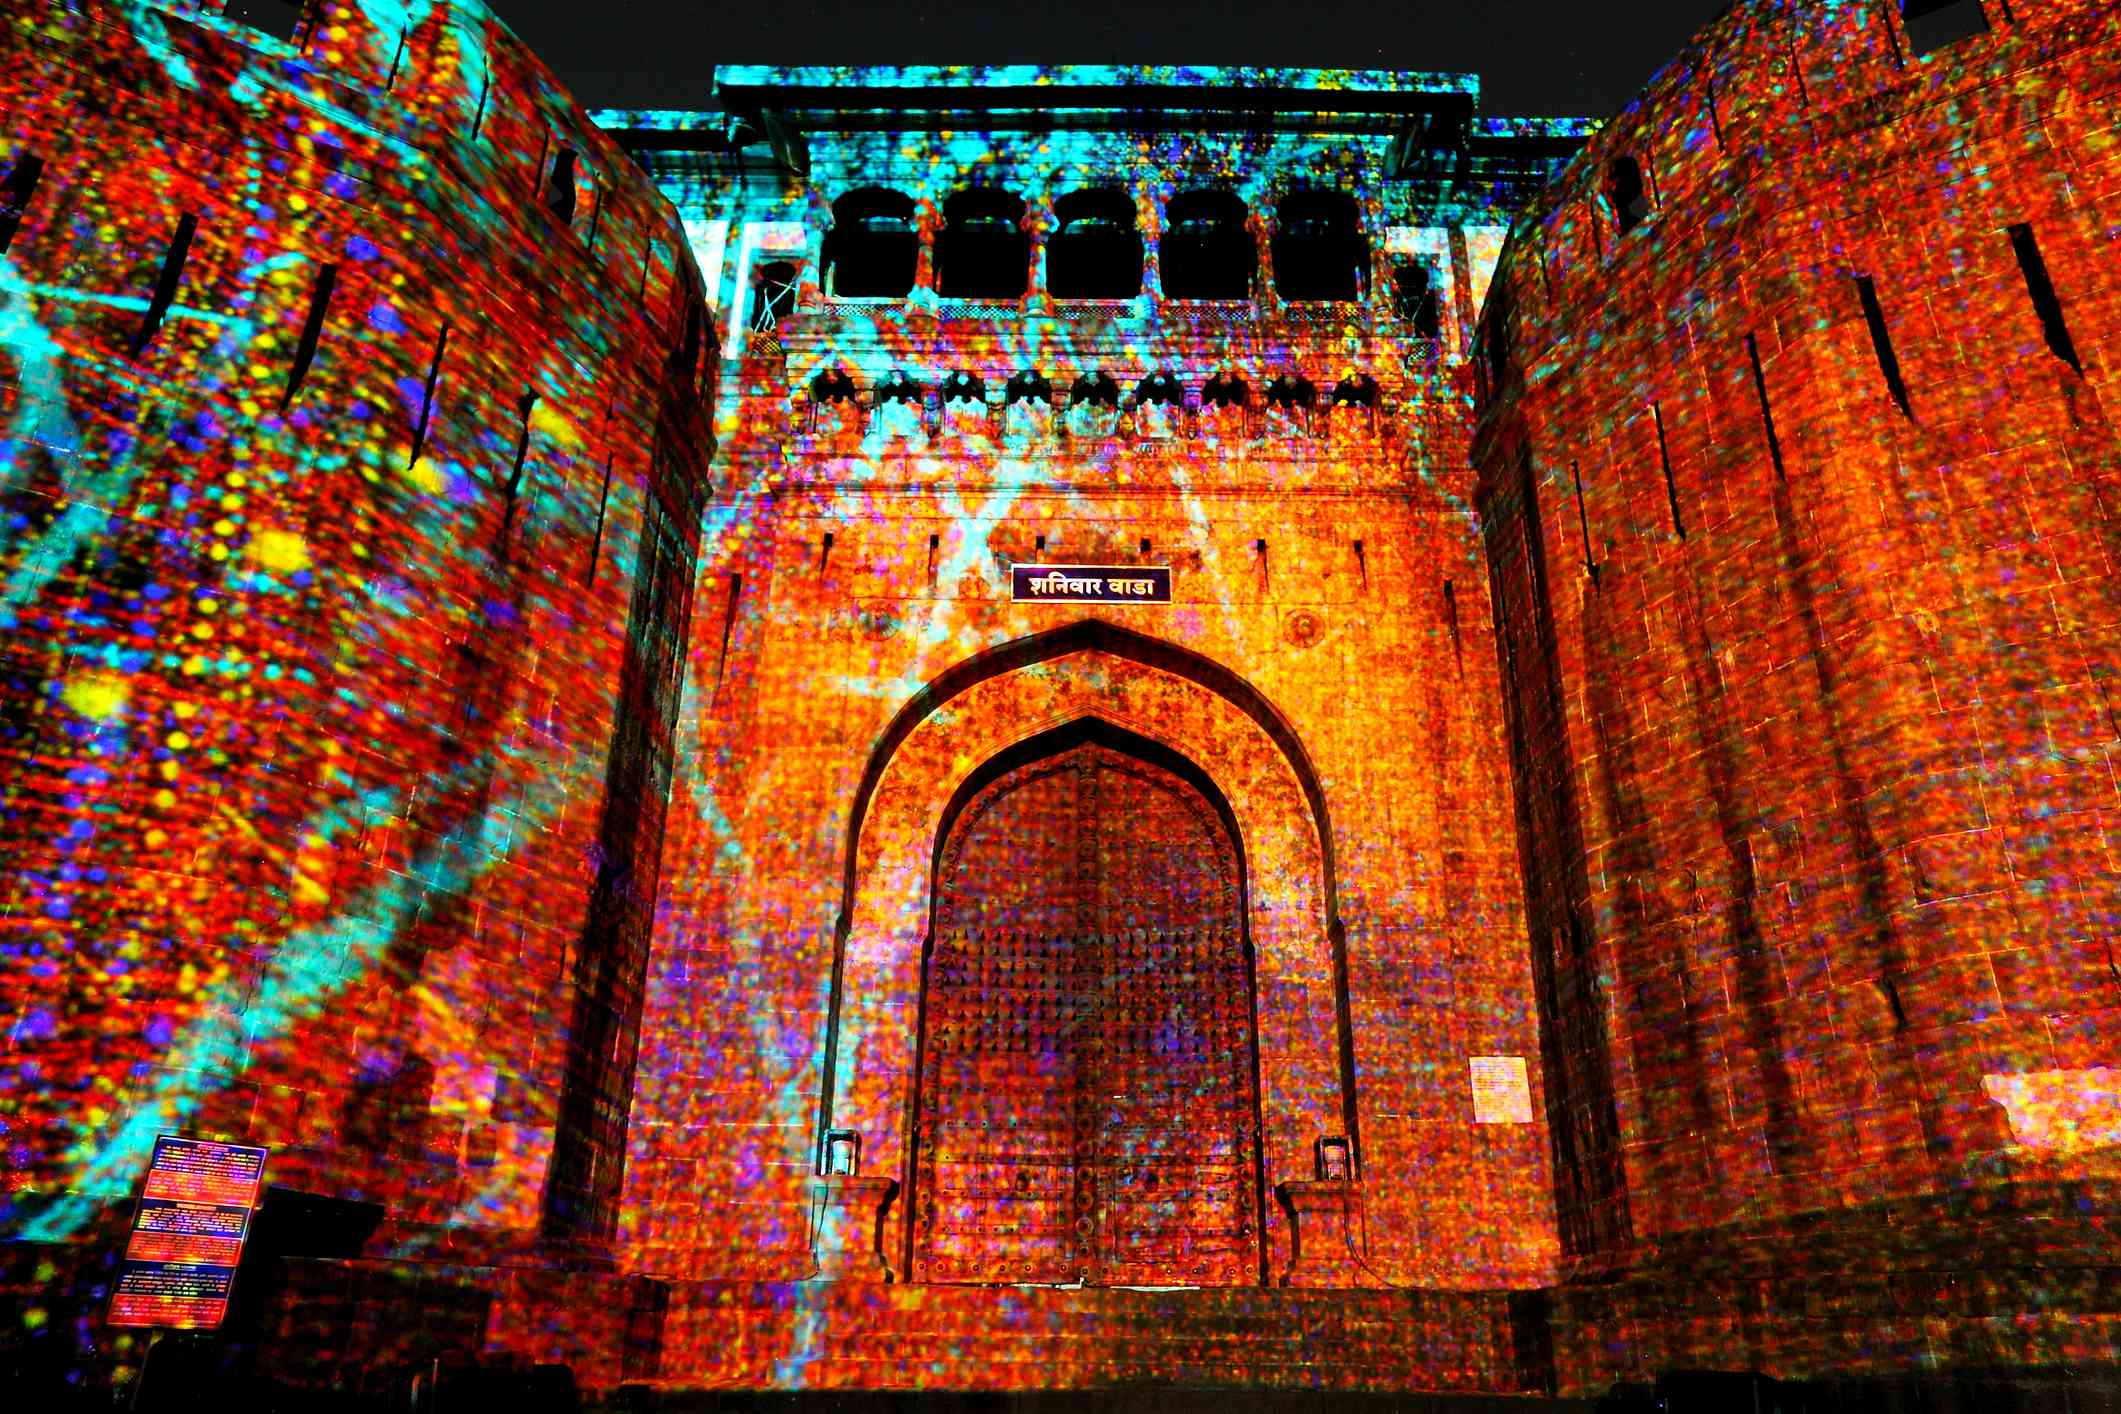 Video Mapping on the Entrance of Shaniwarwada